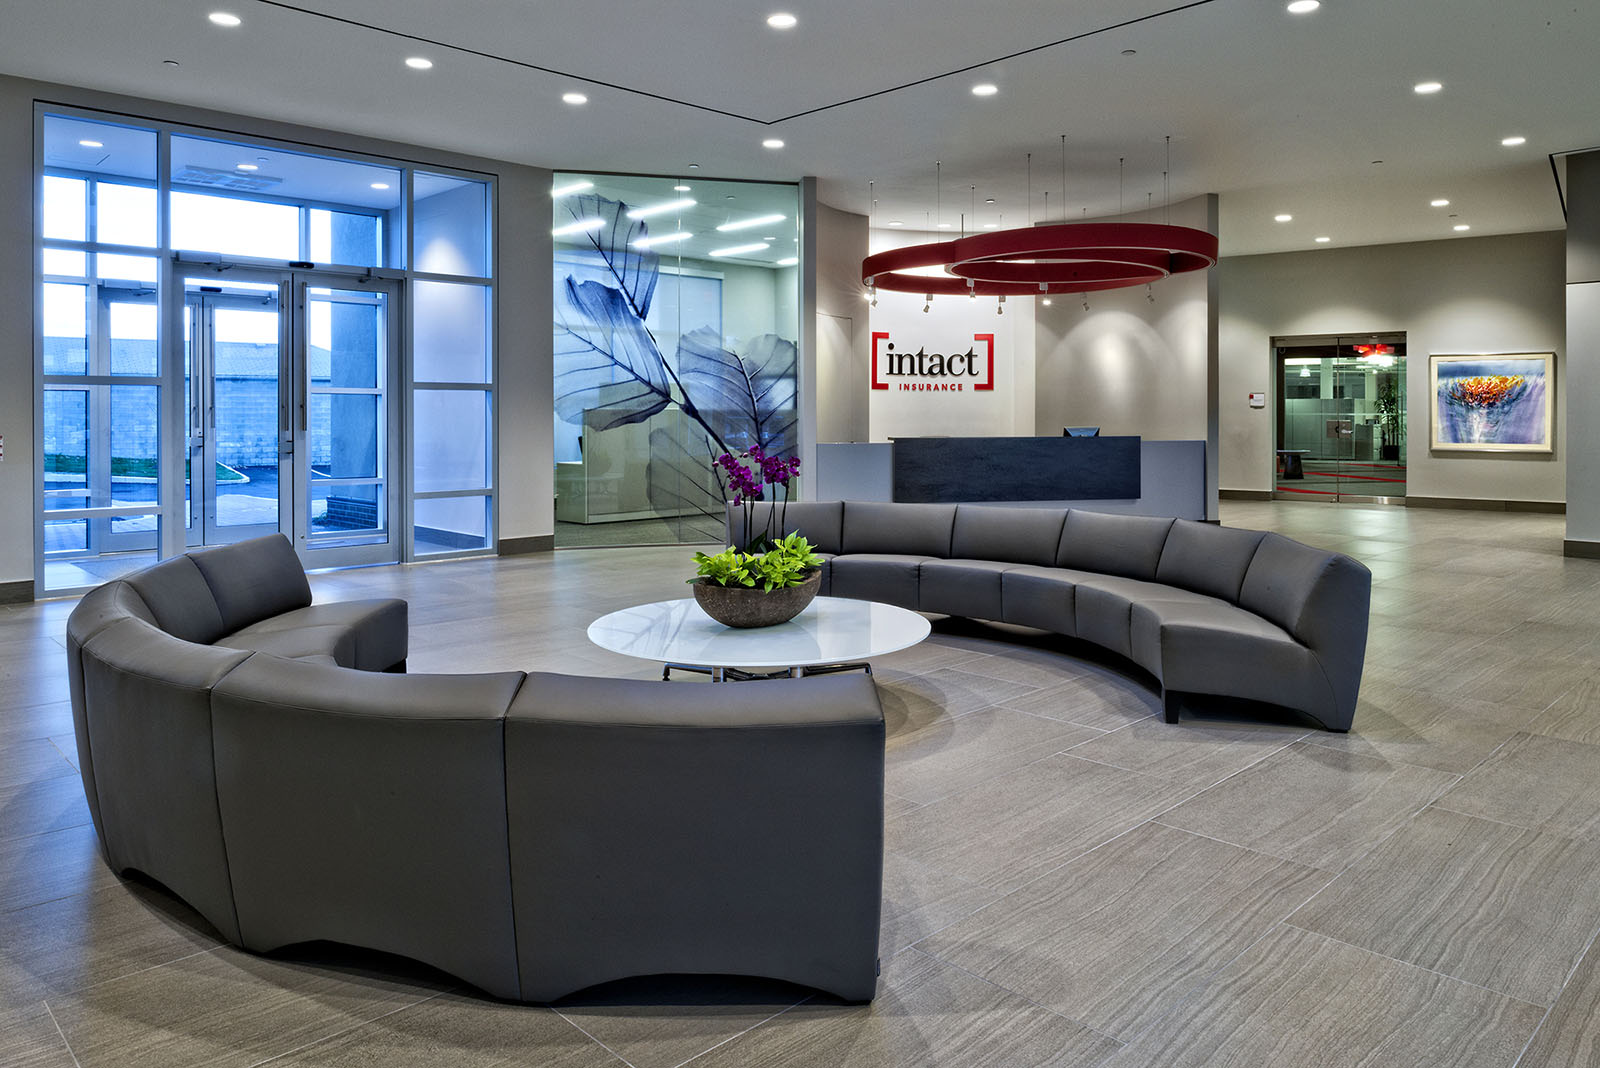 Reception area at Intact Insurance offices, Ajax, Ontario